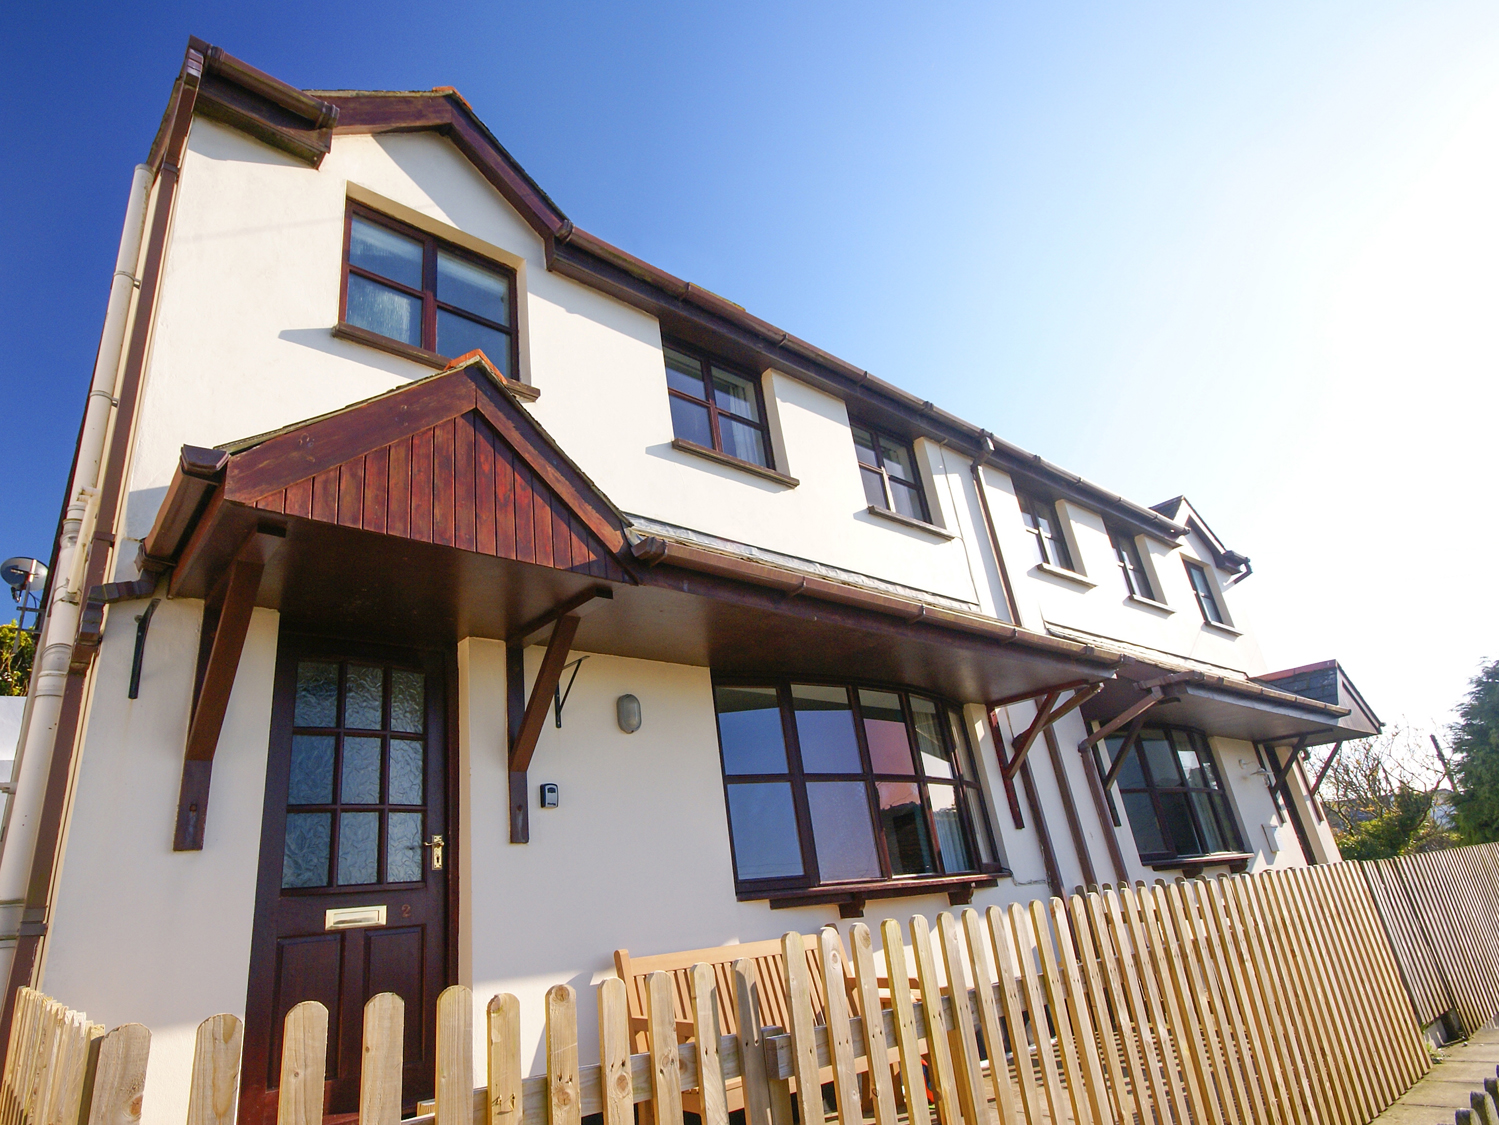 3 bedroom Cottage for rent in Woolacombe Bay